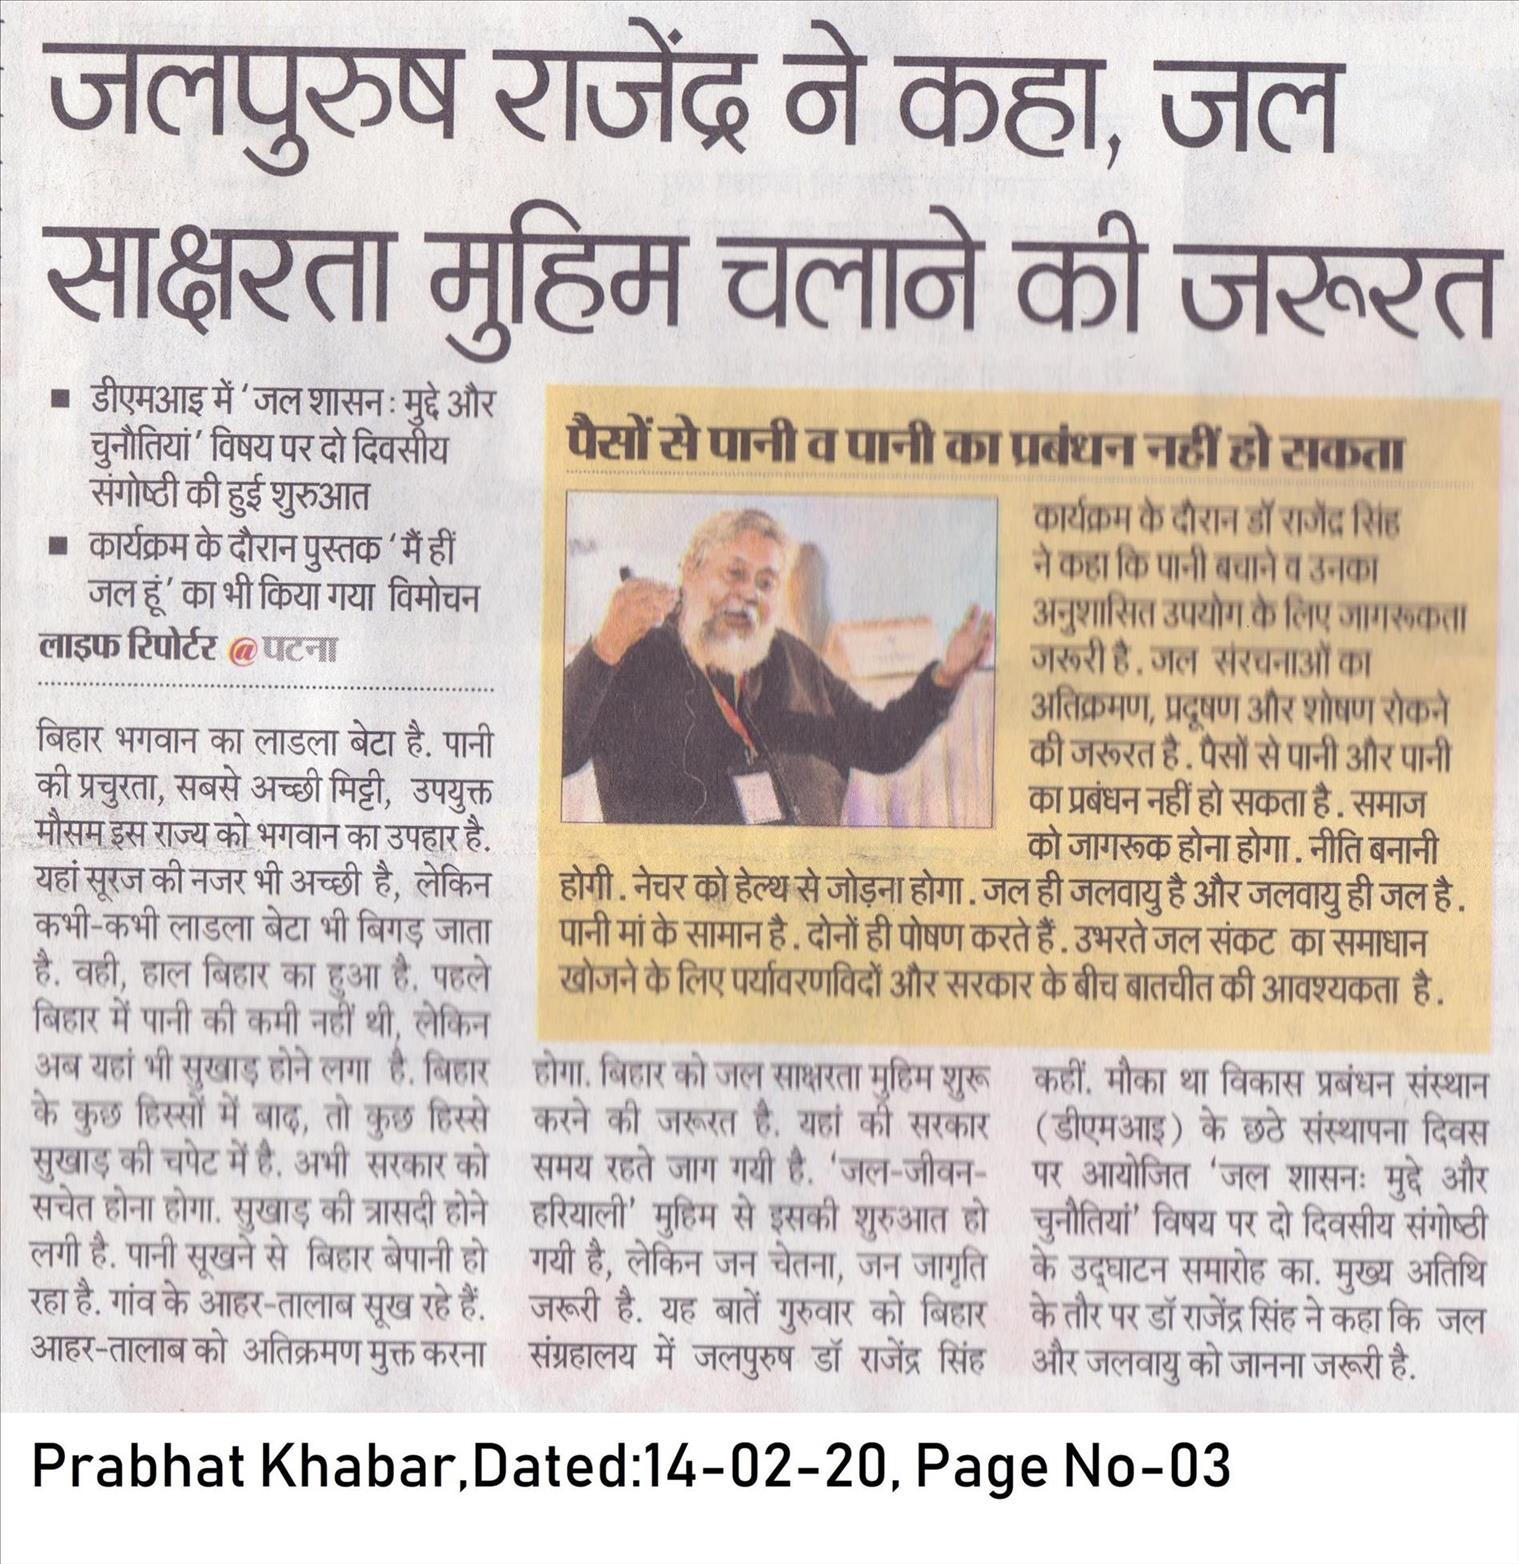 Prabhat Khabar(City Events)Dated 14-02-20,Page No-03